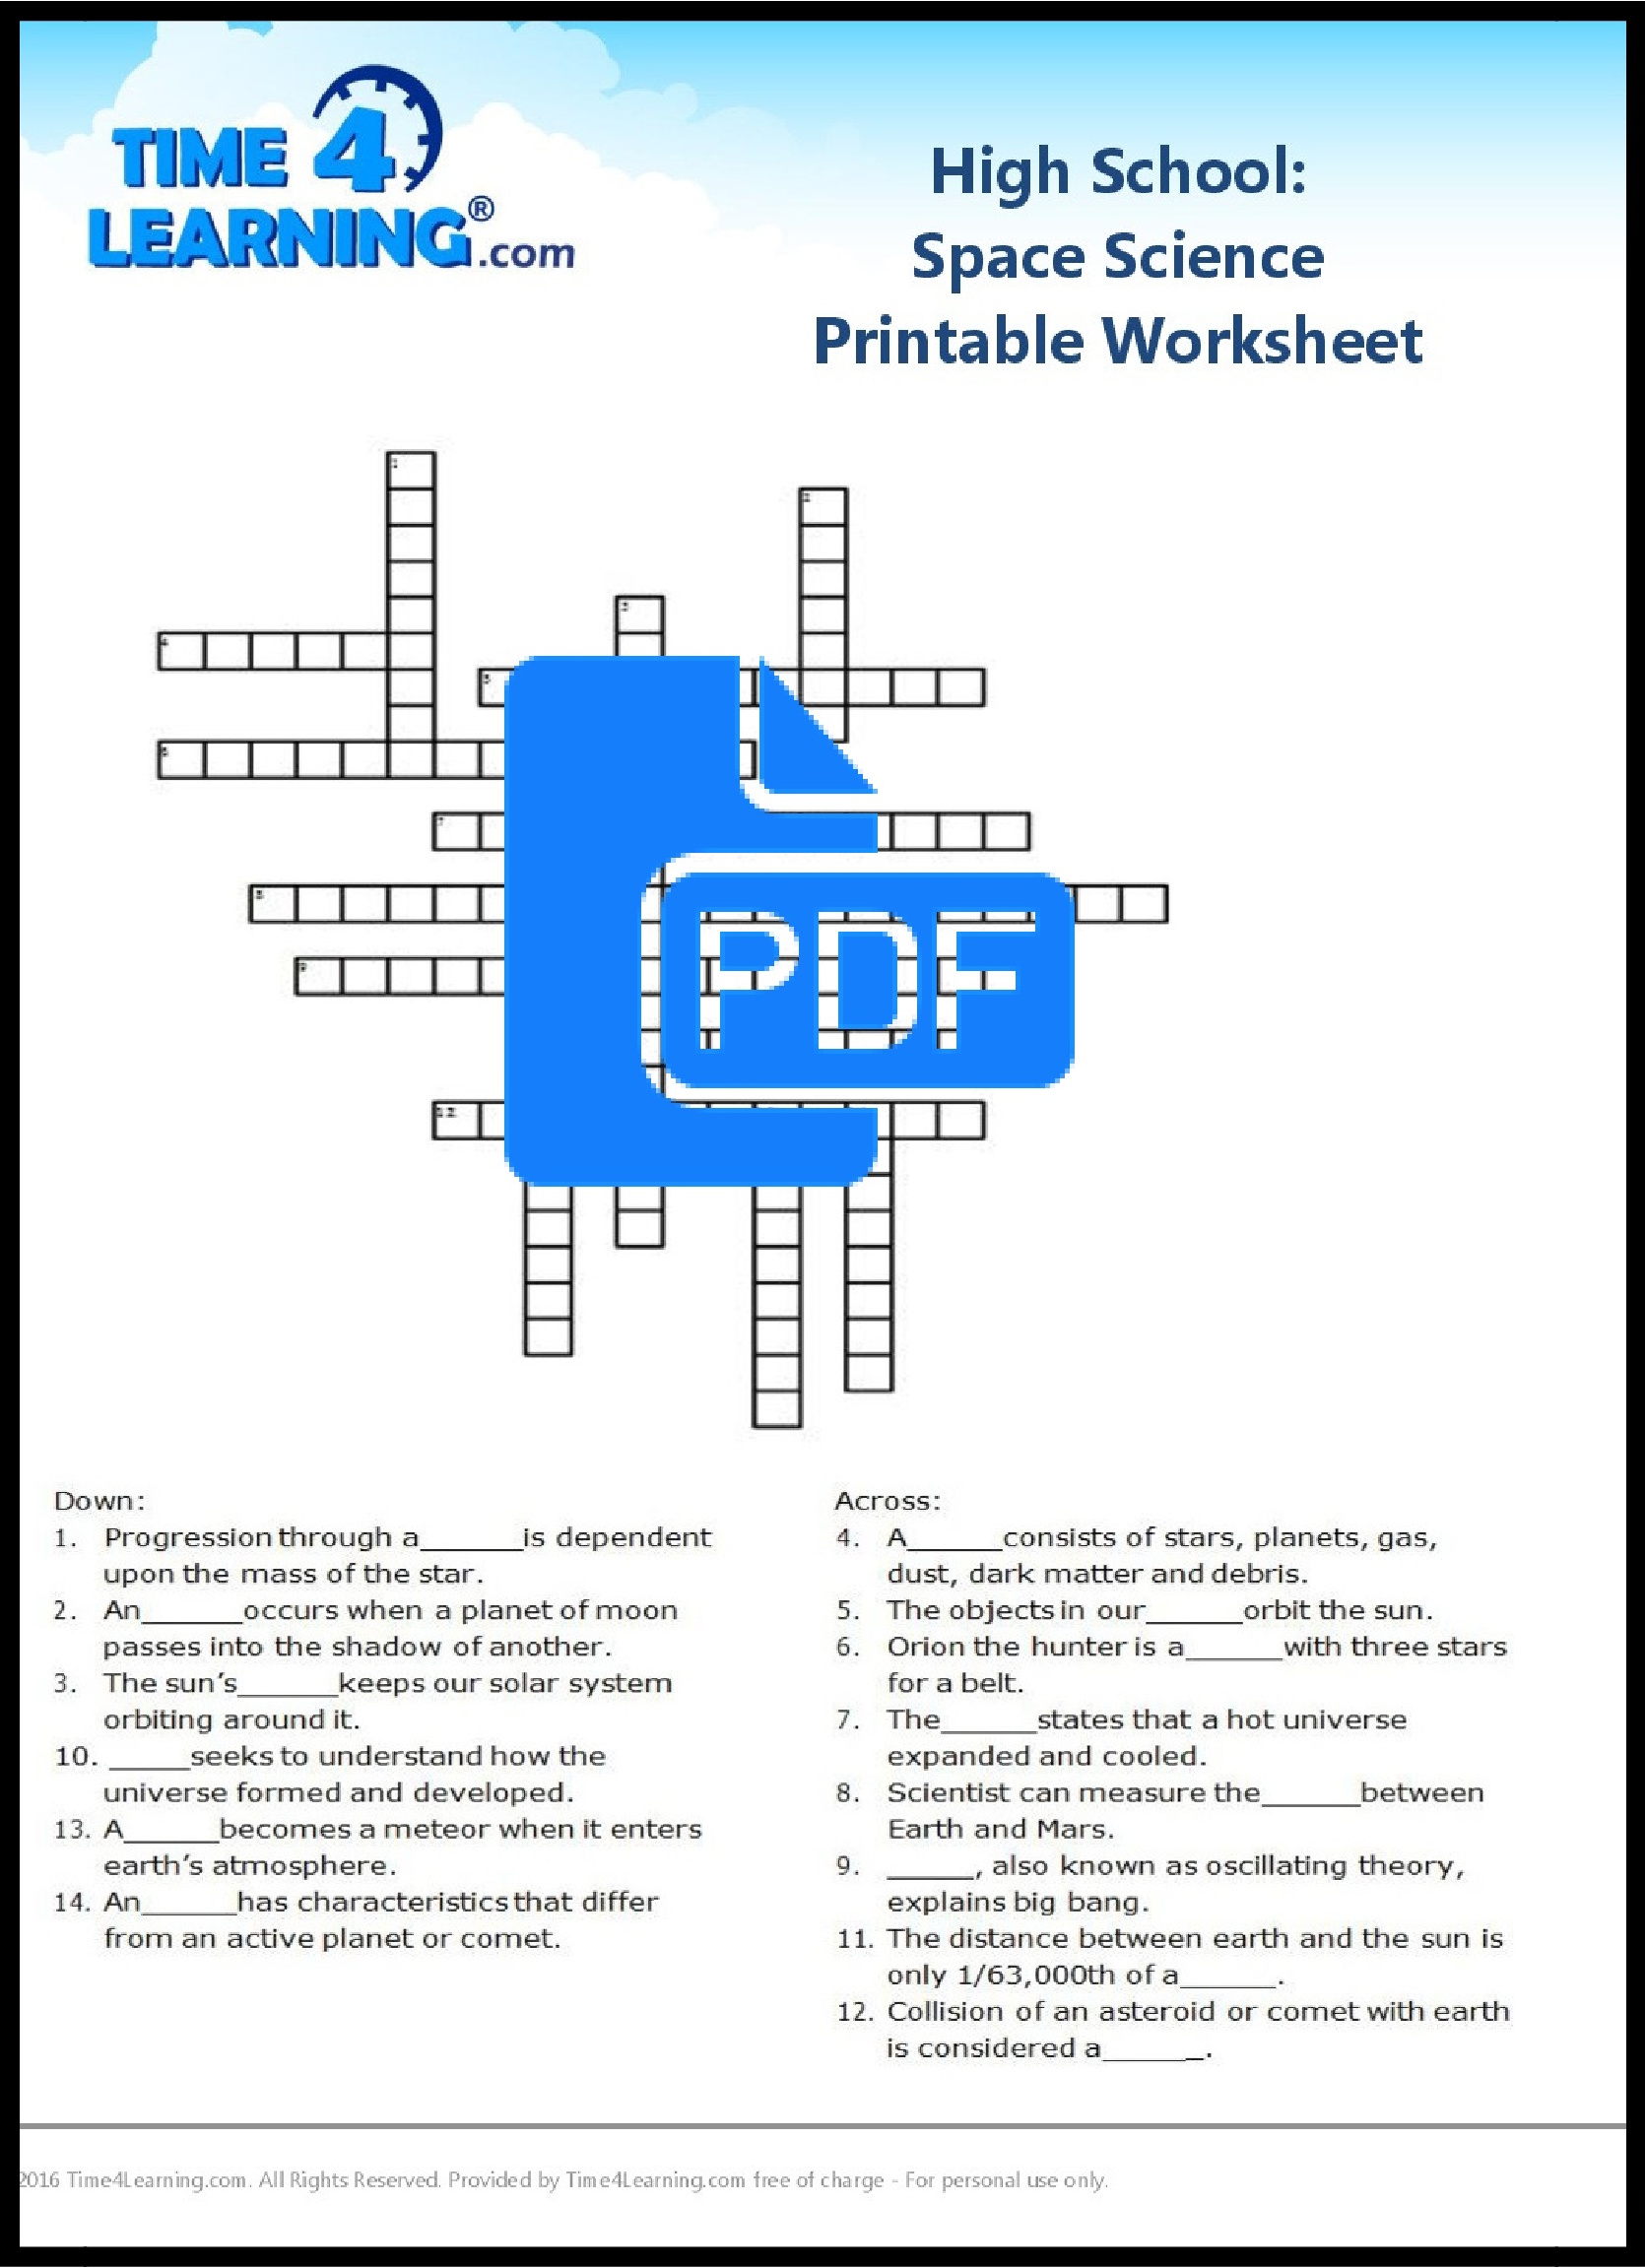 Printable Science Worksheet 9th